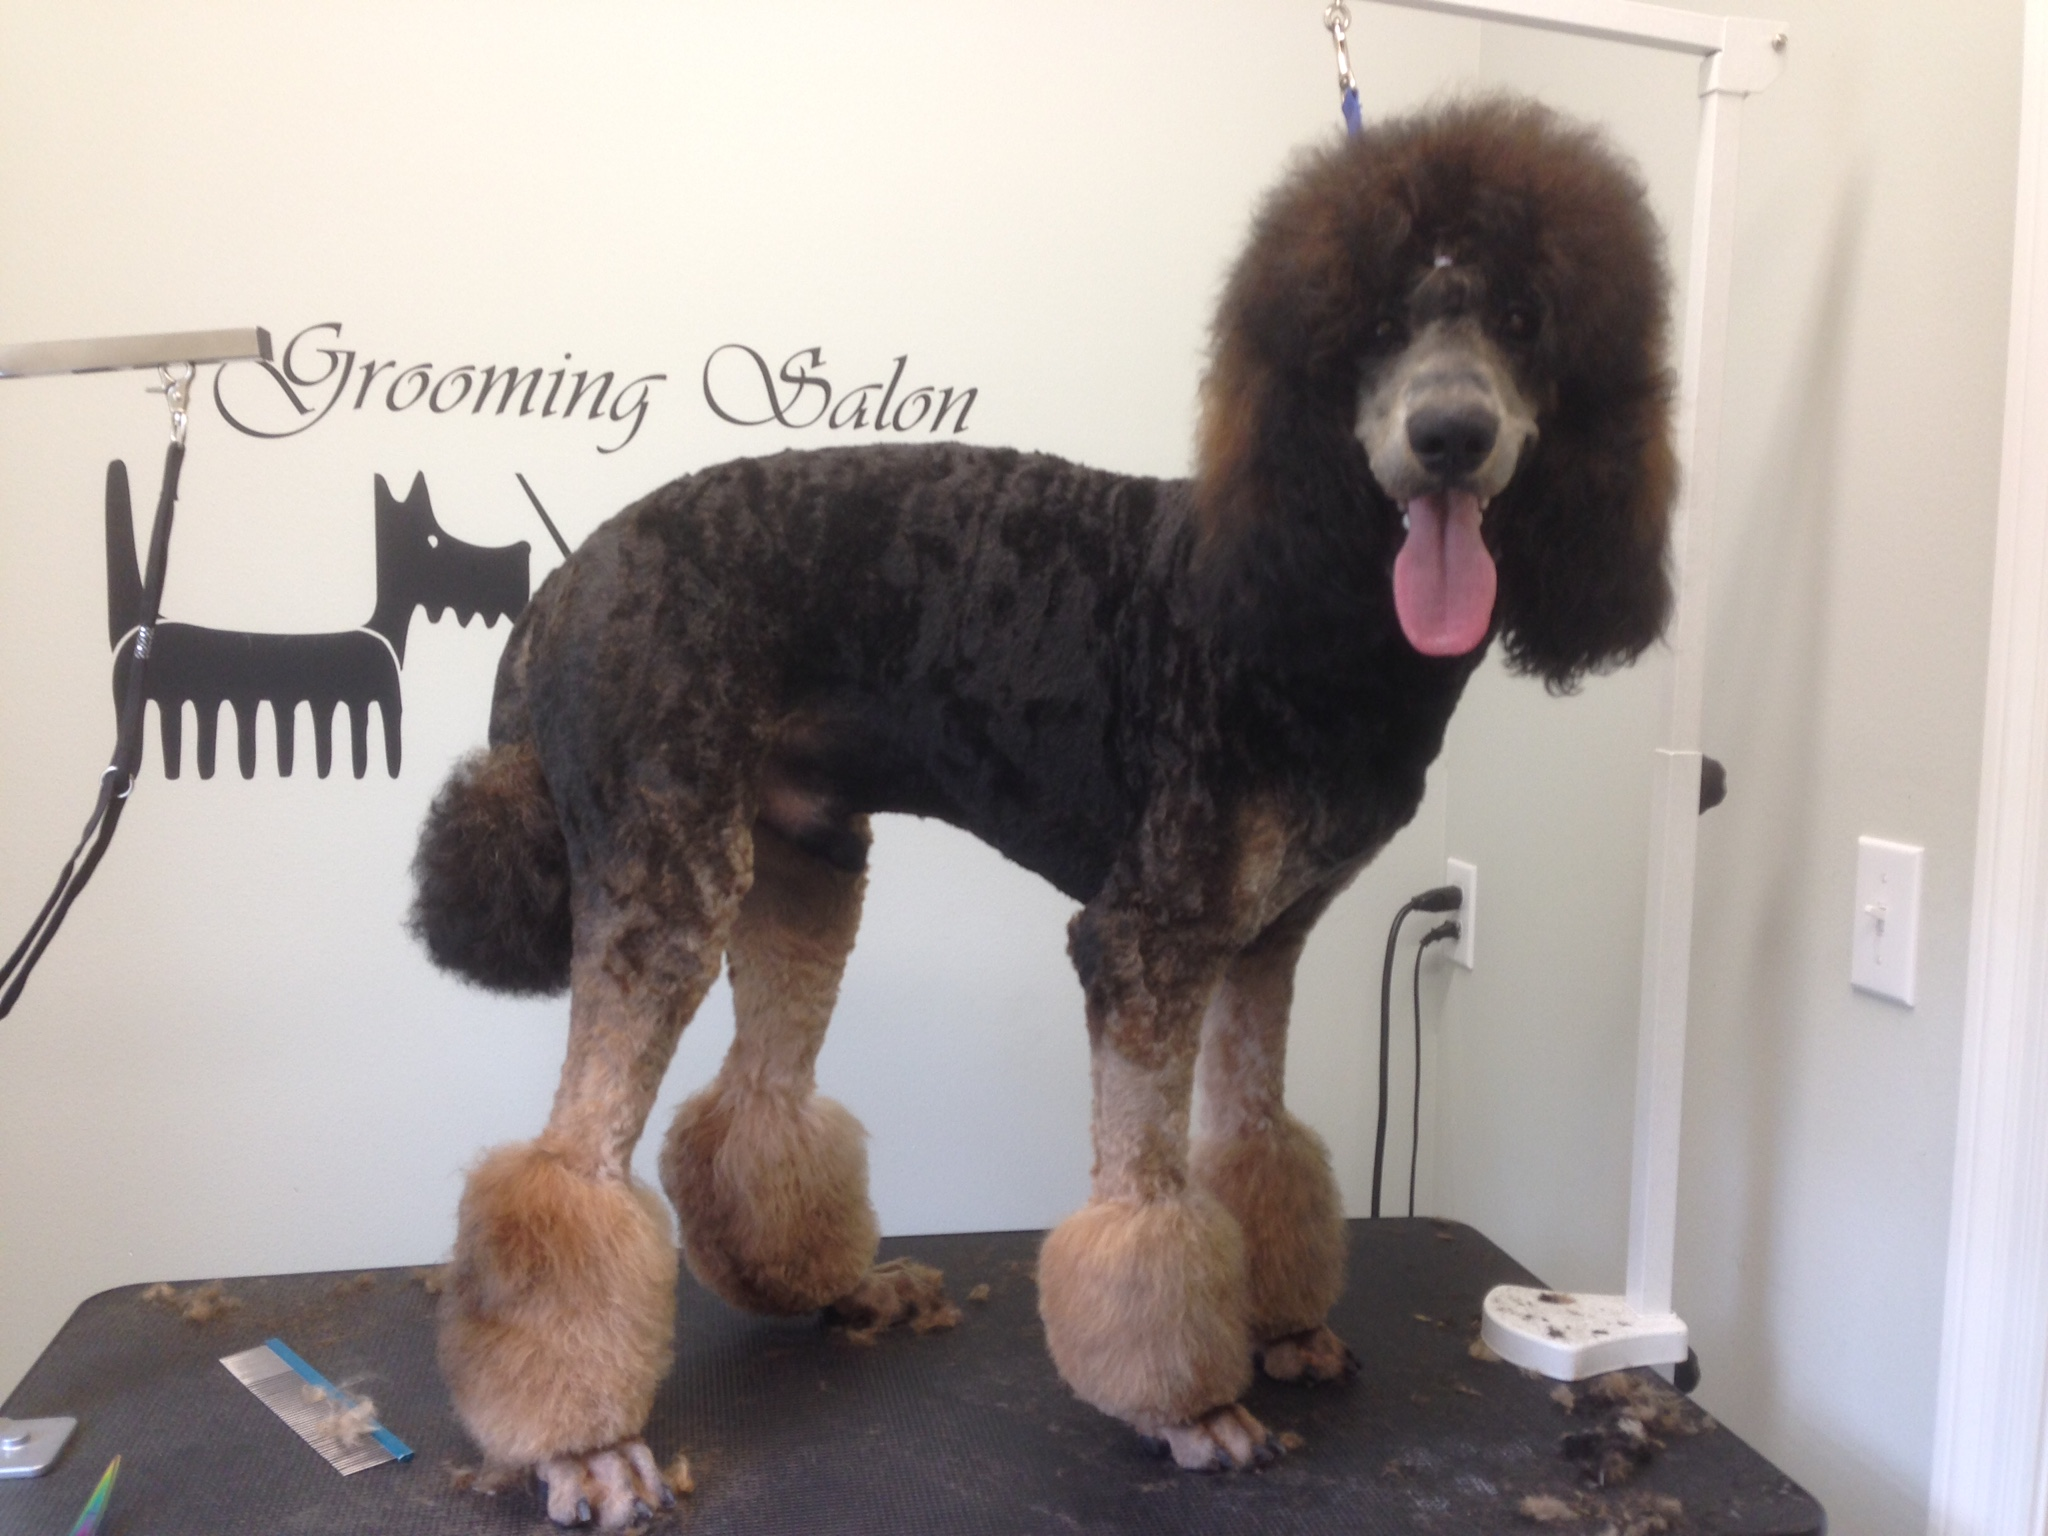 Standard poodle on the grooming table